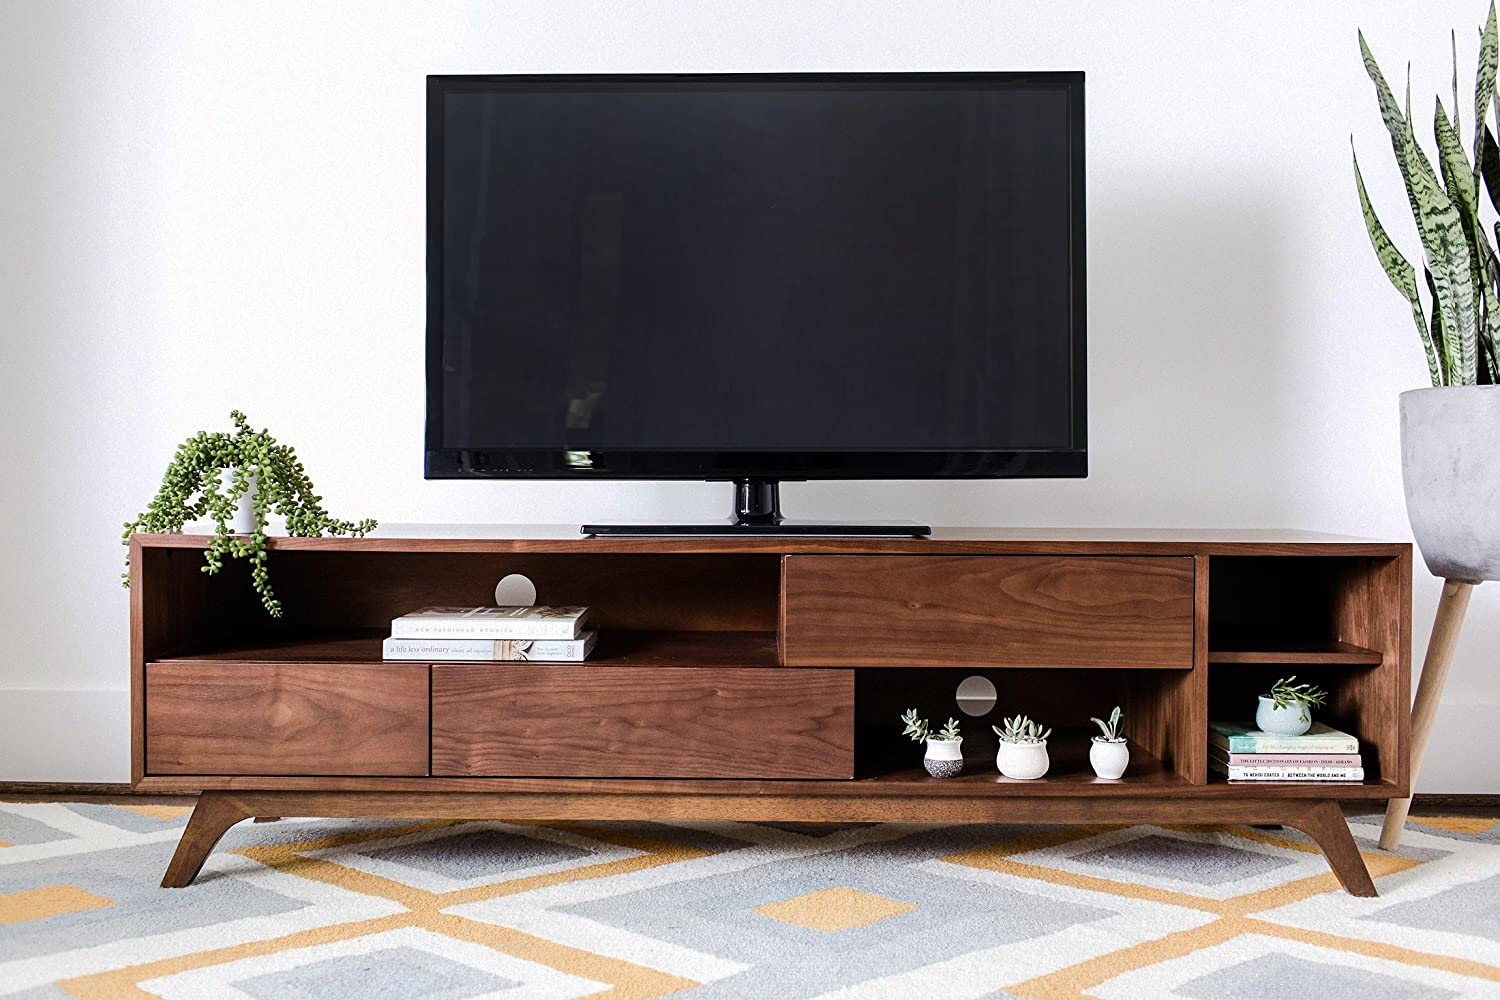 Edloe Finch PIPER Mid-Century Modern TV Stand, Cabinet with Storage, Walnut